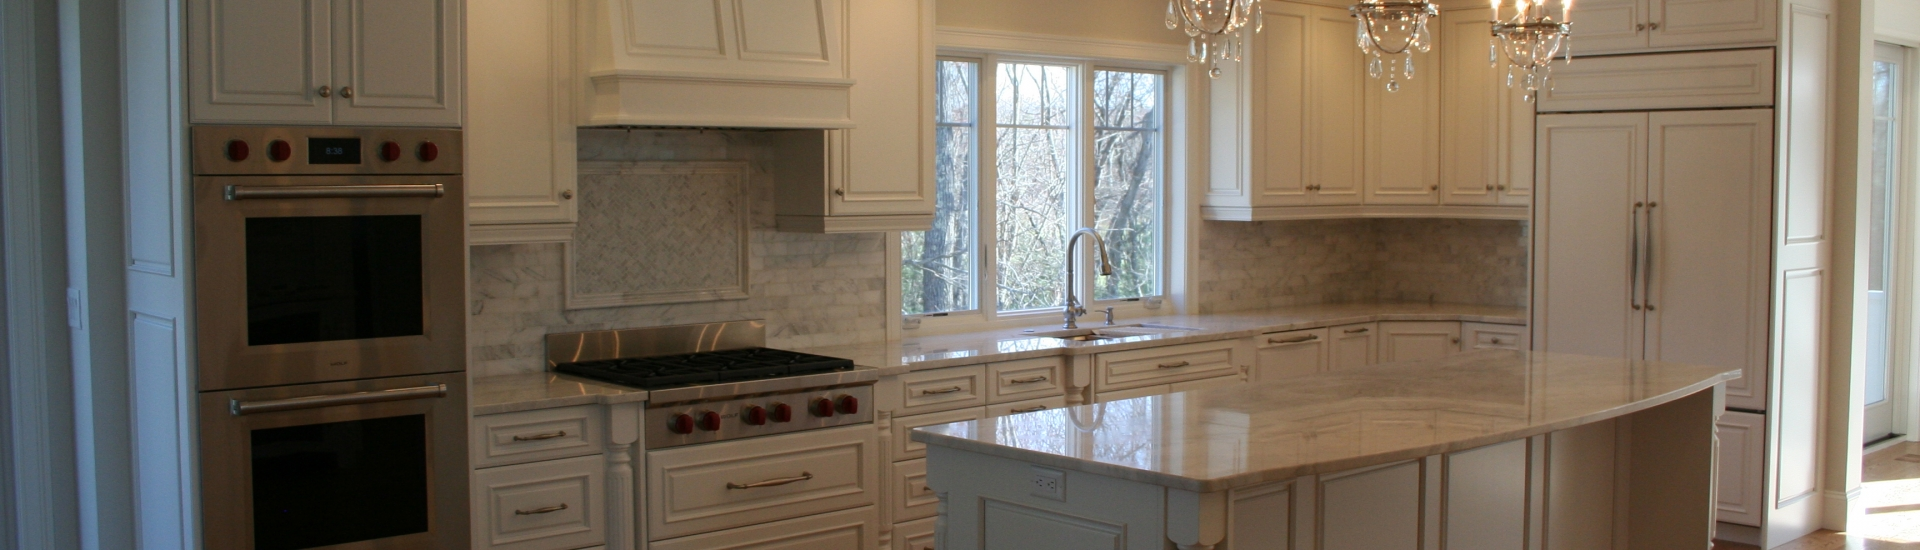 kitchen cabinets by curtis cabinetry - curtis cabinetry